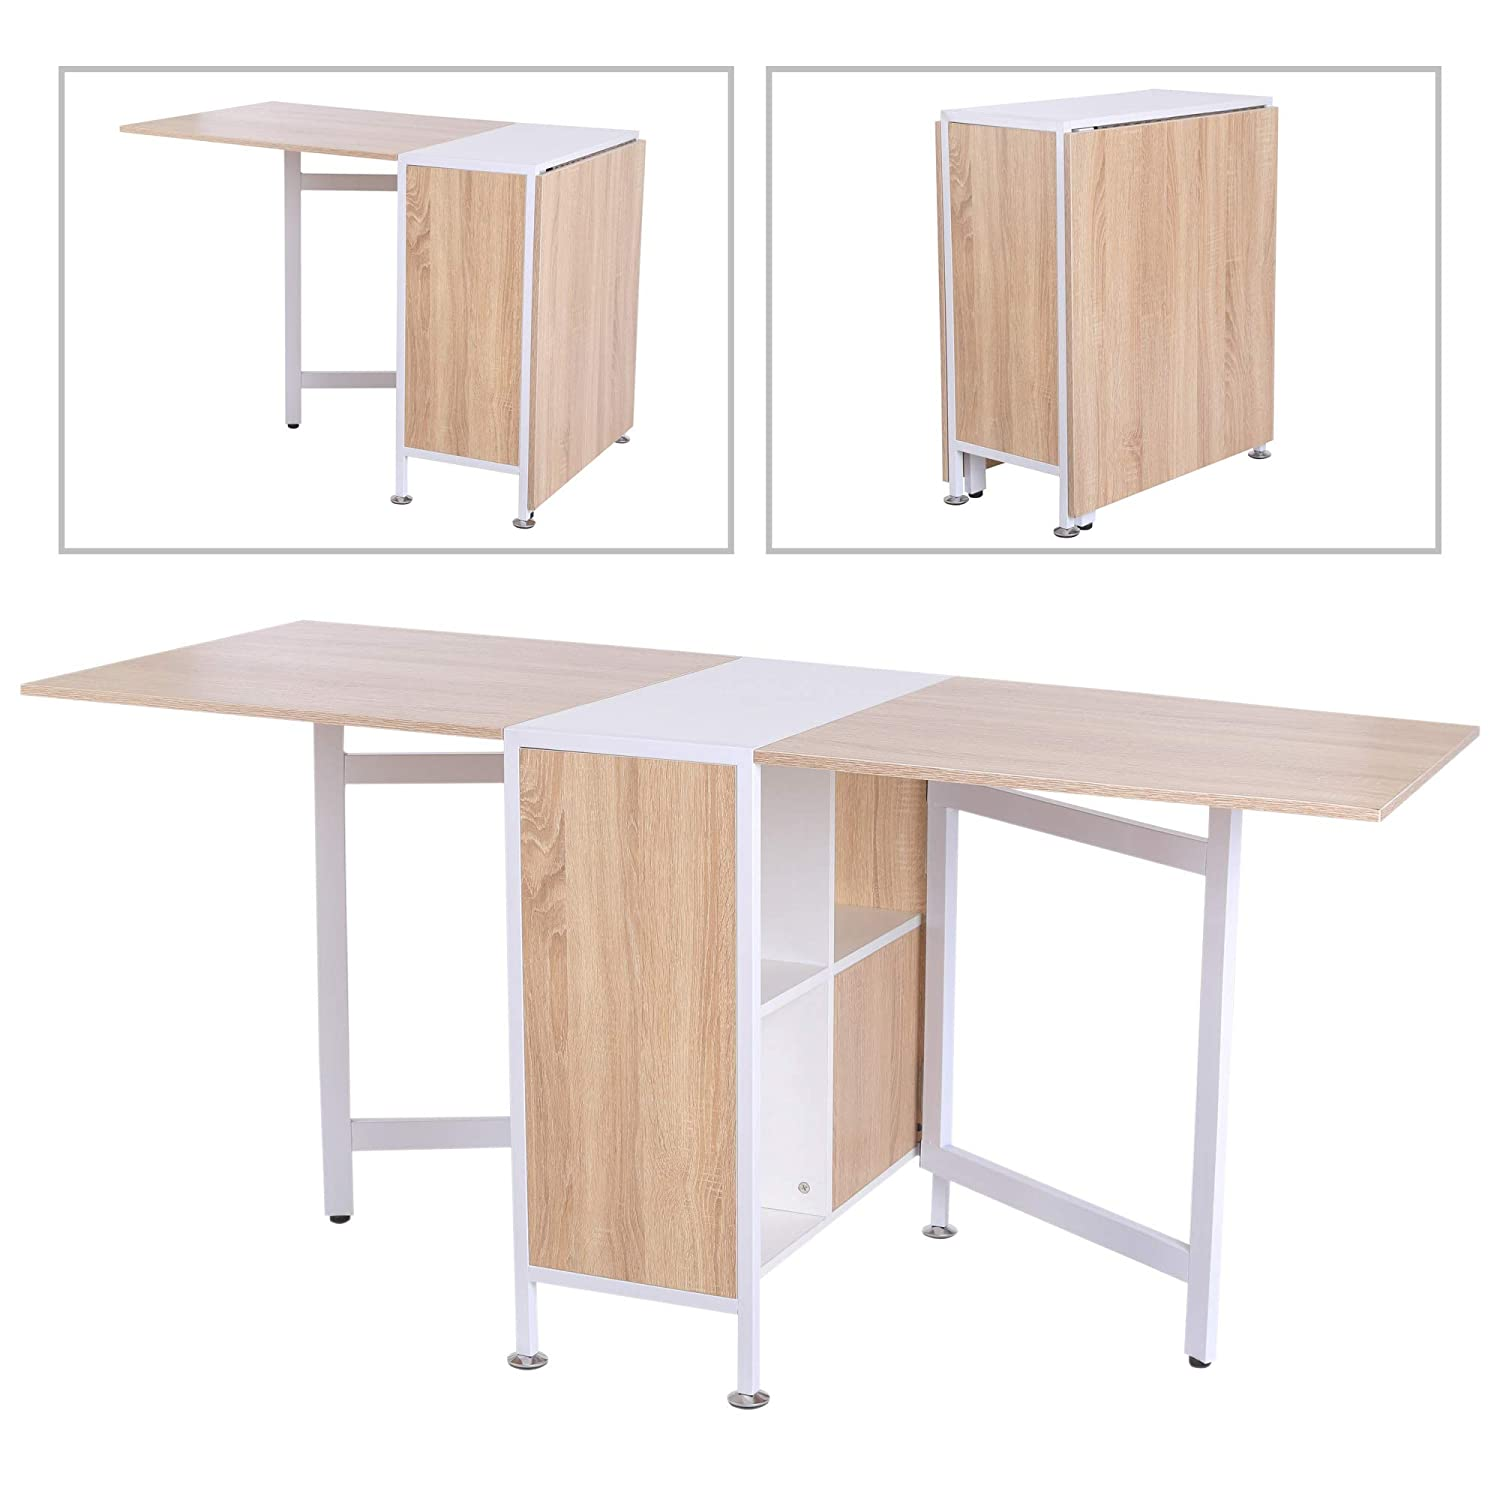 HOMCOM Foldable Drop Leaf Dining Kitchen Table Folding Computer Desk Workstation for Small Space with 2 Storage Shelves Cubes Oak & White Sold by MHSTAR